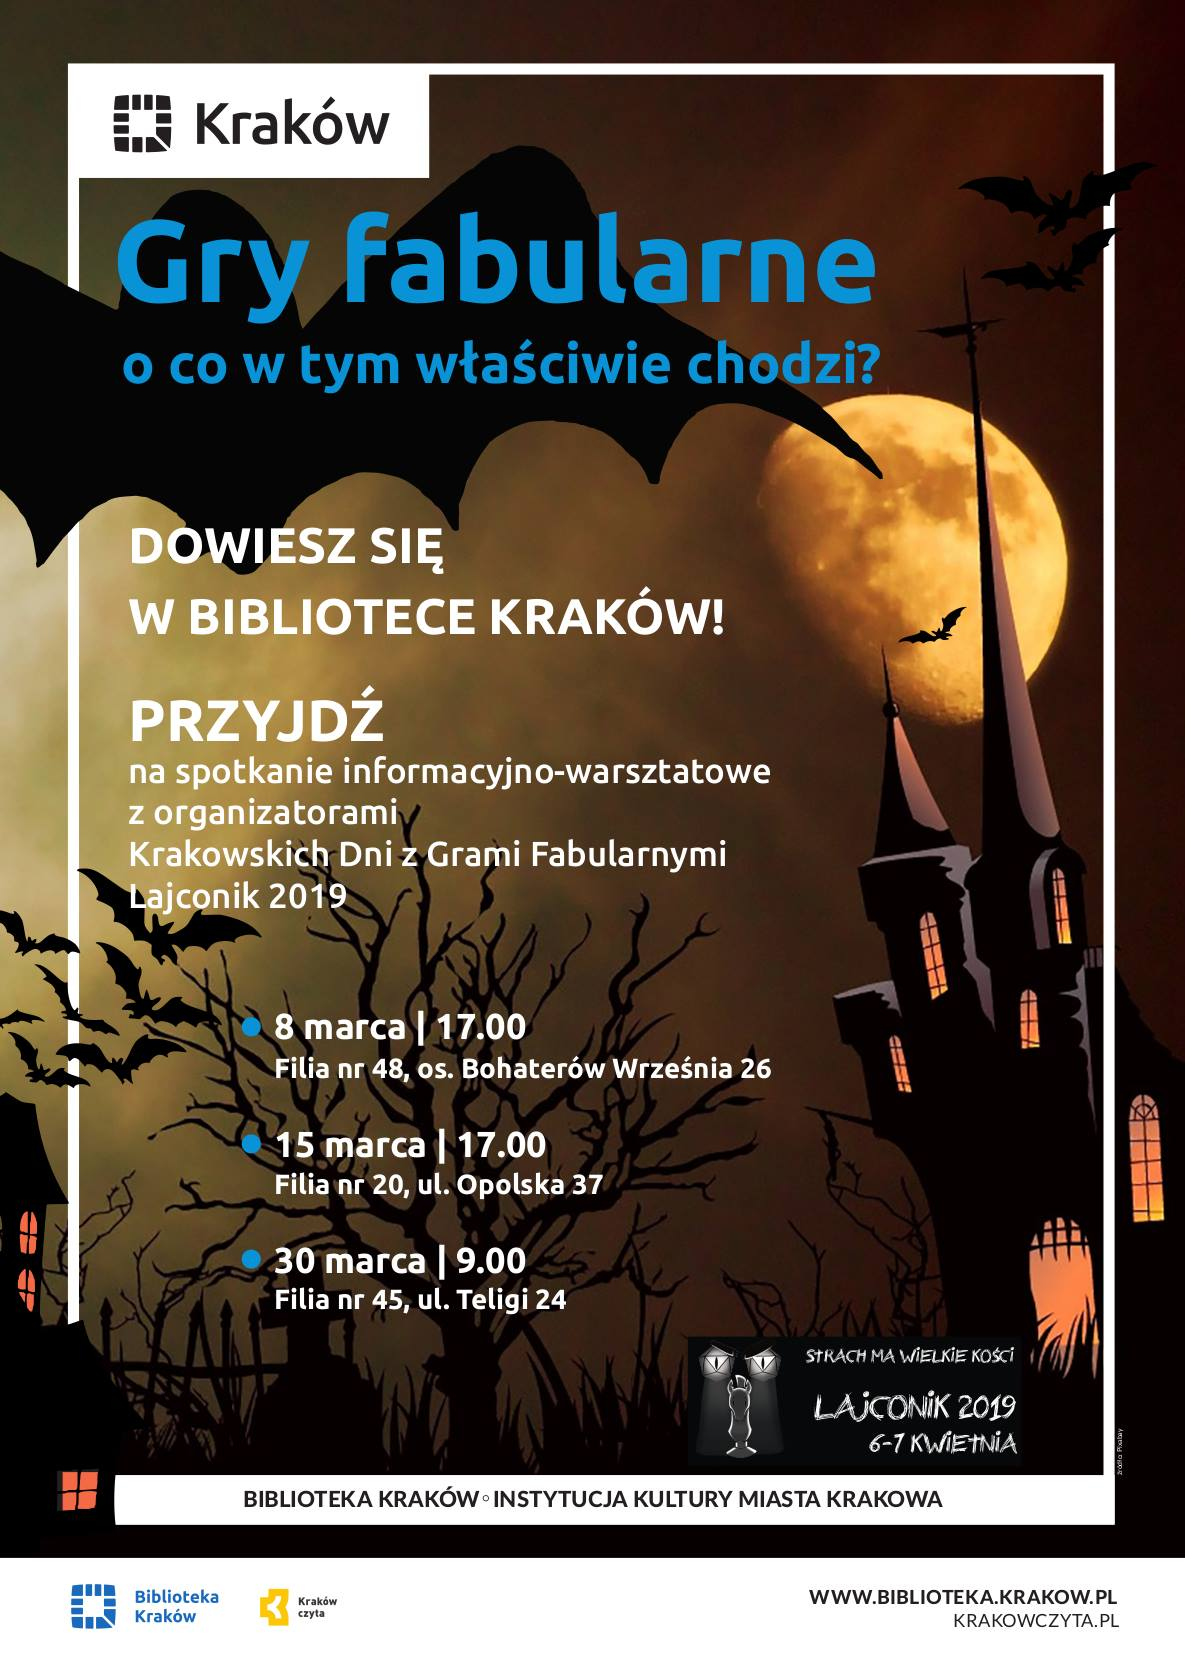 Poster promoting RPG meetings in Krakow City Library. Picture shows an old castle, full moon and a few bats flying. There is a title in Polish which means